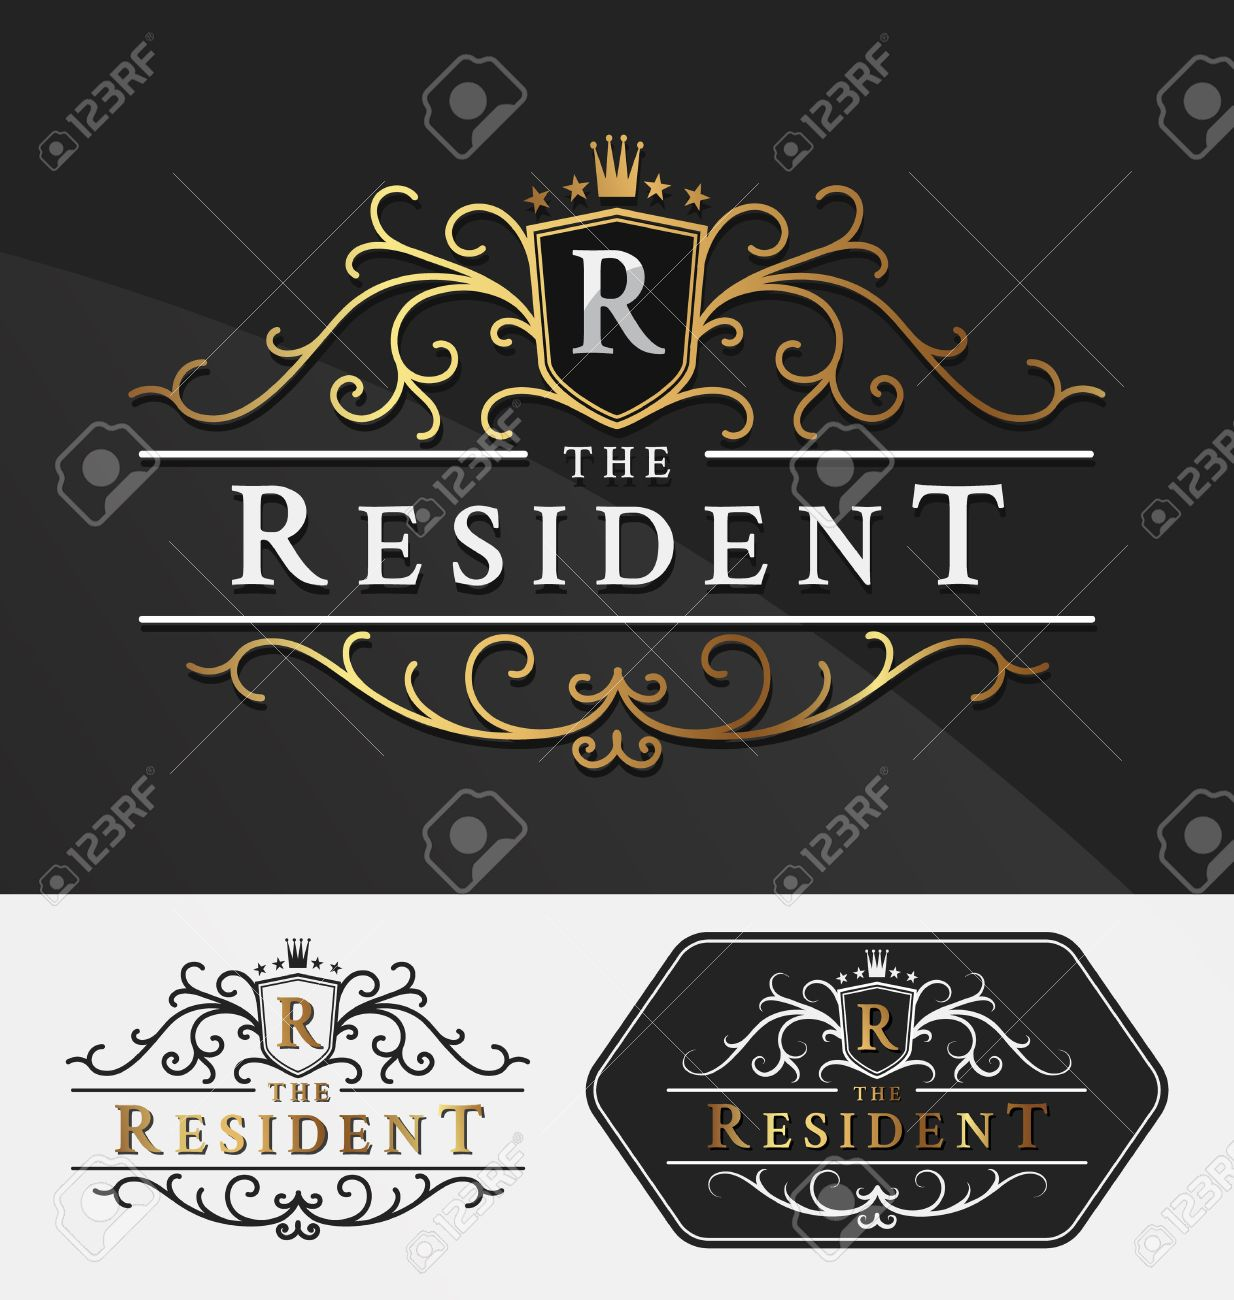 Luxurious Royal Logo Vector Re-sizable Design Template Suitable For Businesses and Product Names, Luxury industry like hotel, wedding, restaurant, jewelry and real estate. - 46969349